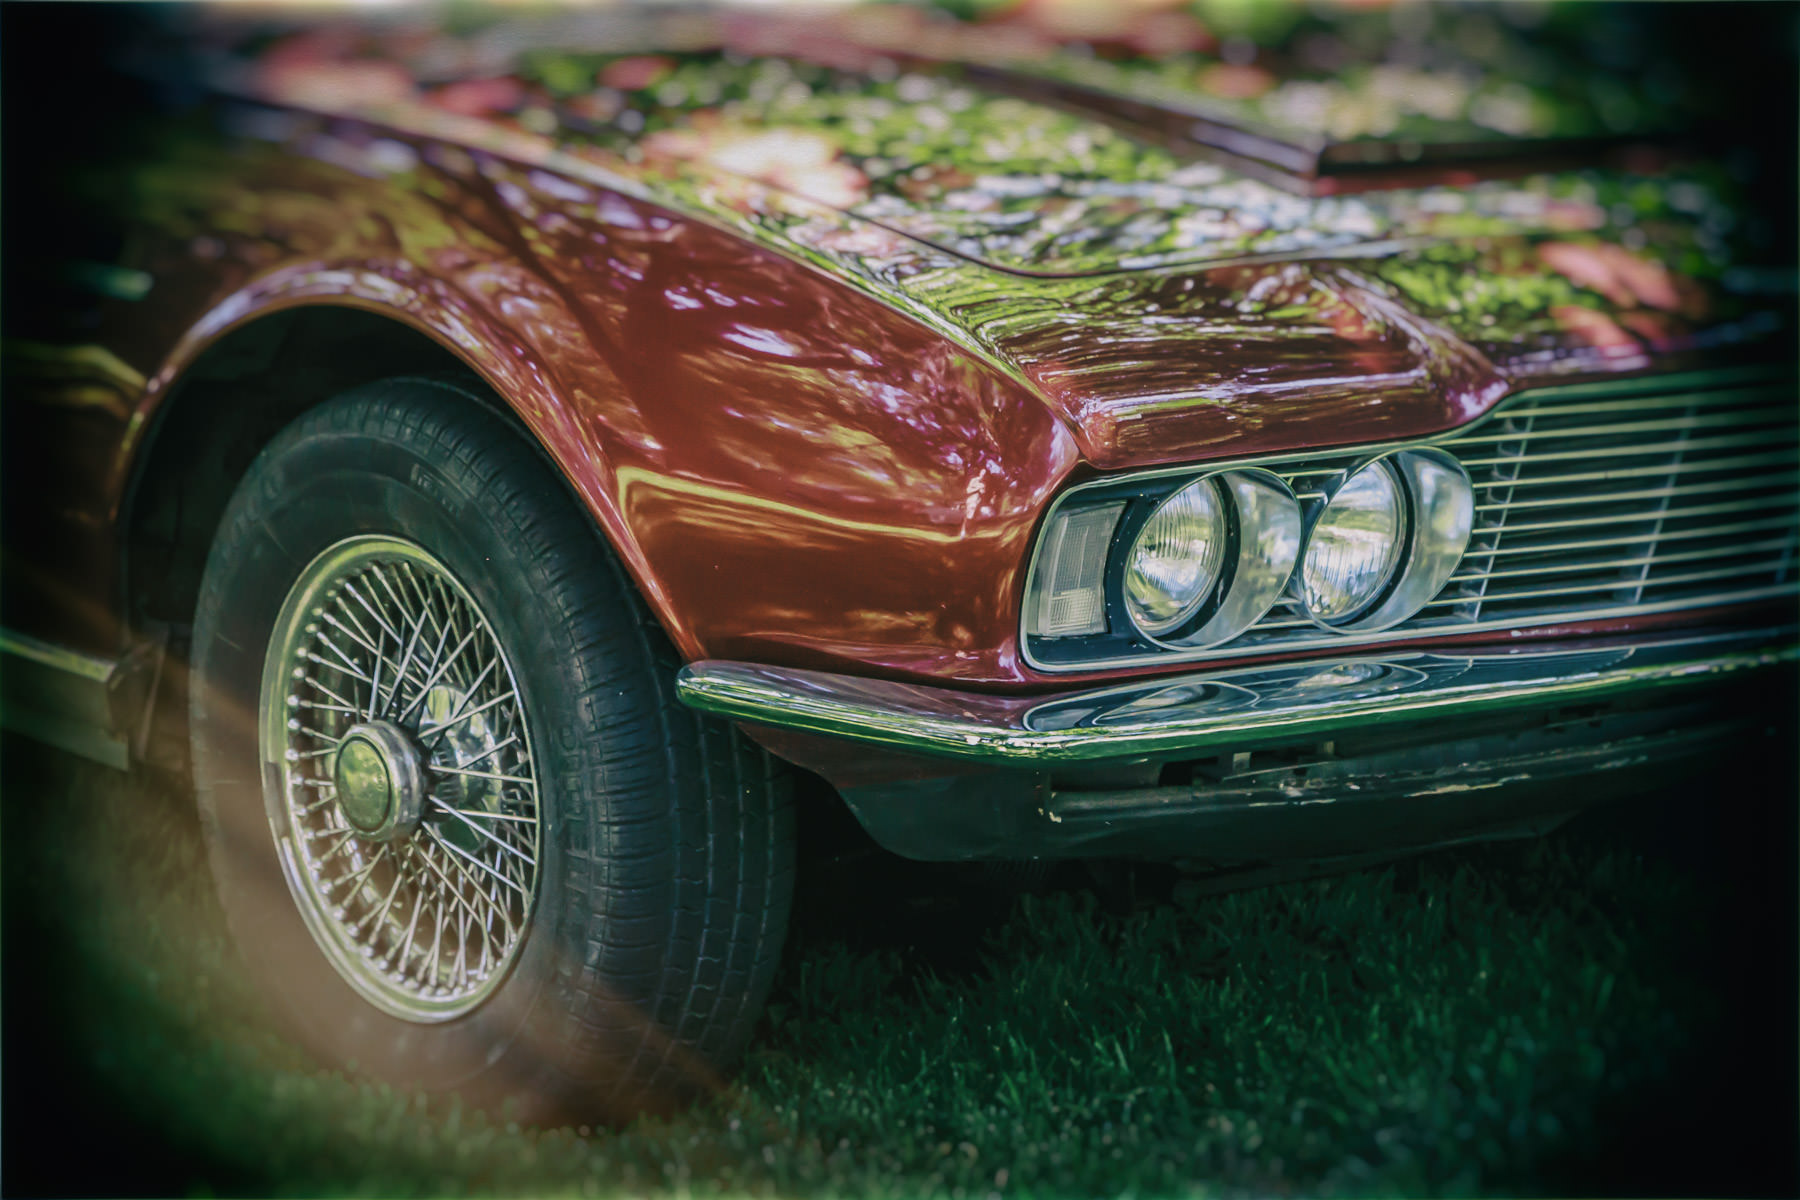 Detail of a classic Aston Martin DBS at Dallas' Autos in the Park event at the Cooper Institute.